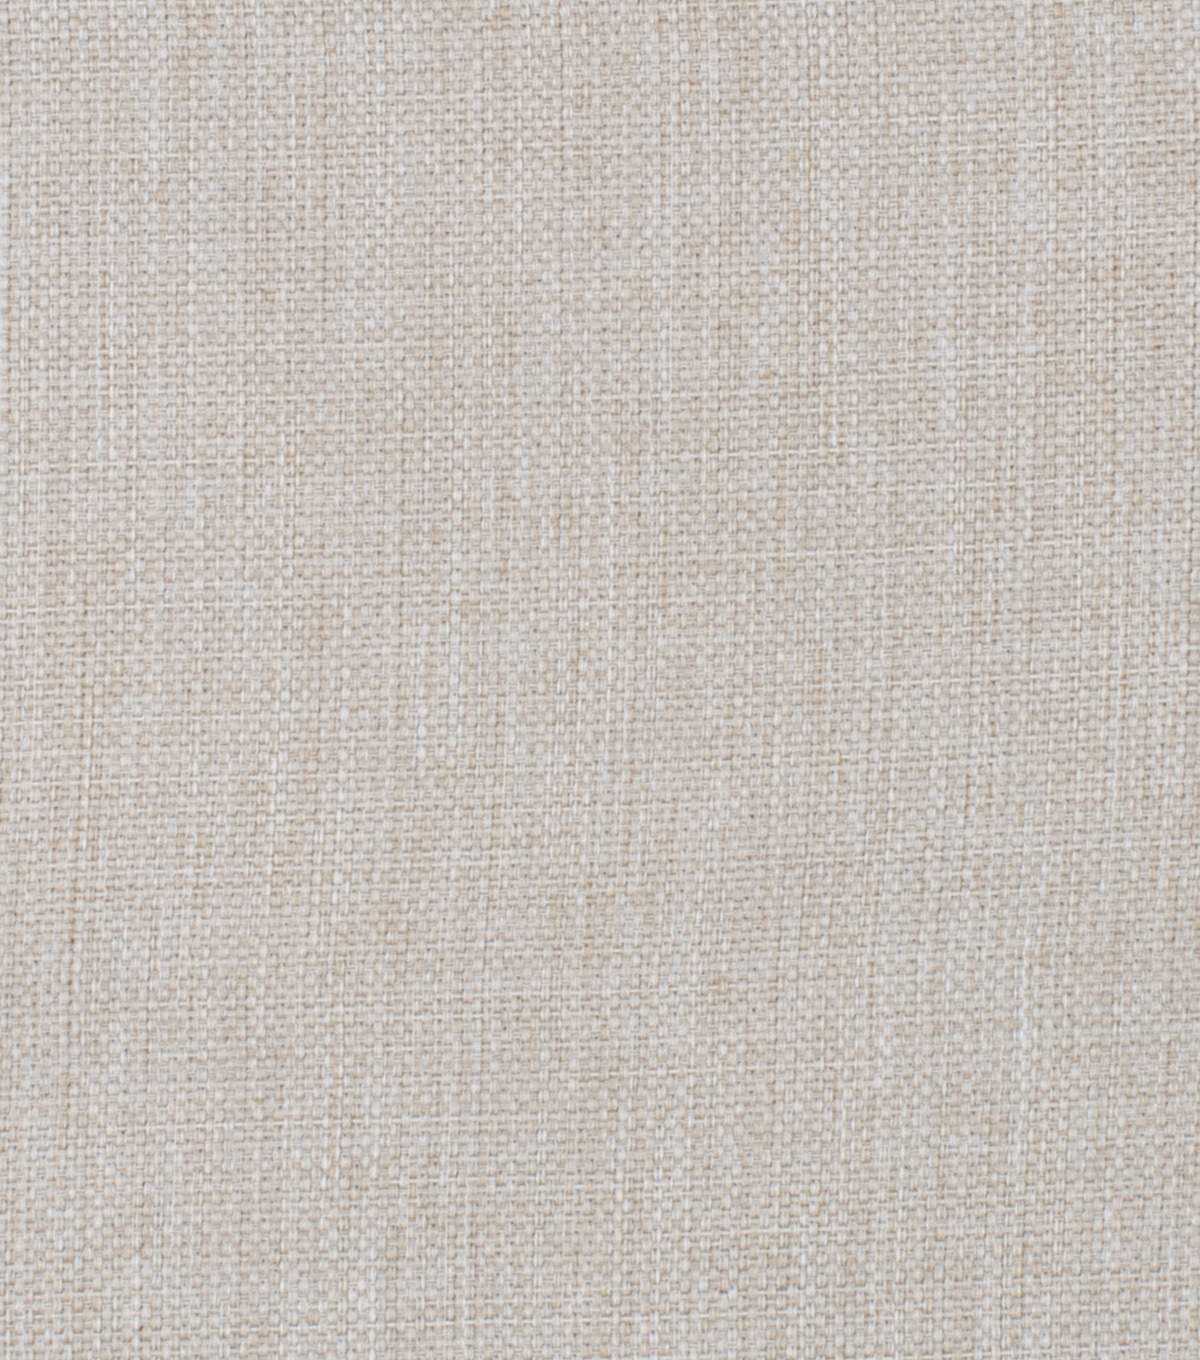 Home Decor 8\u0022x8\u0022 Fabric Swatch-Signature Series Inverness Putty